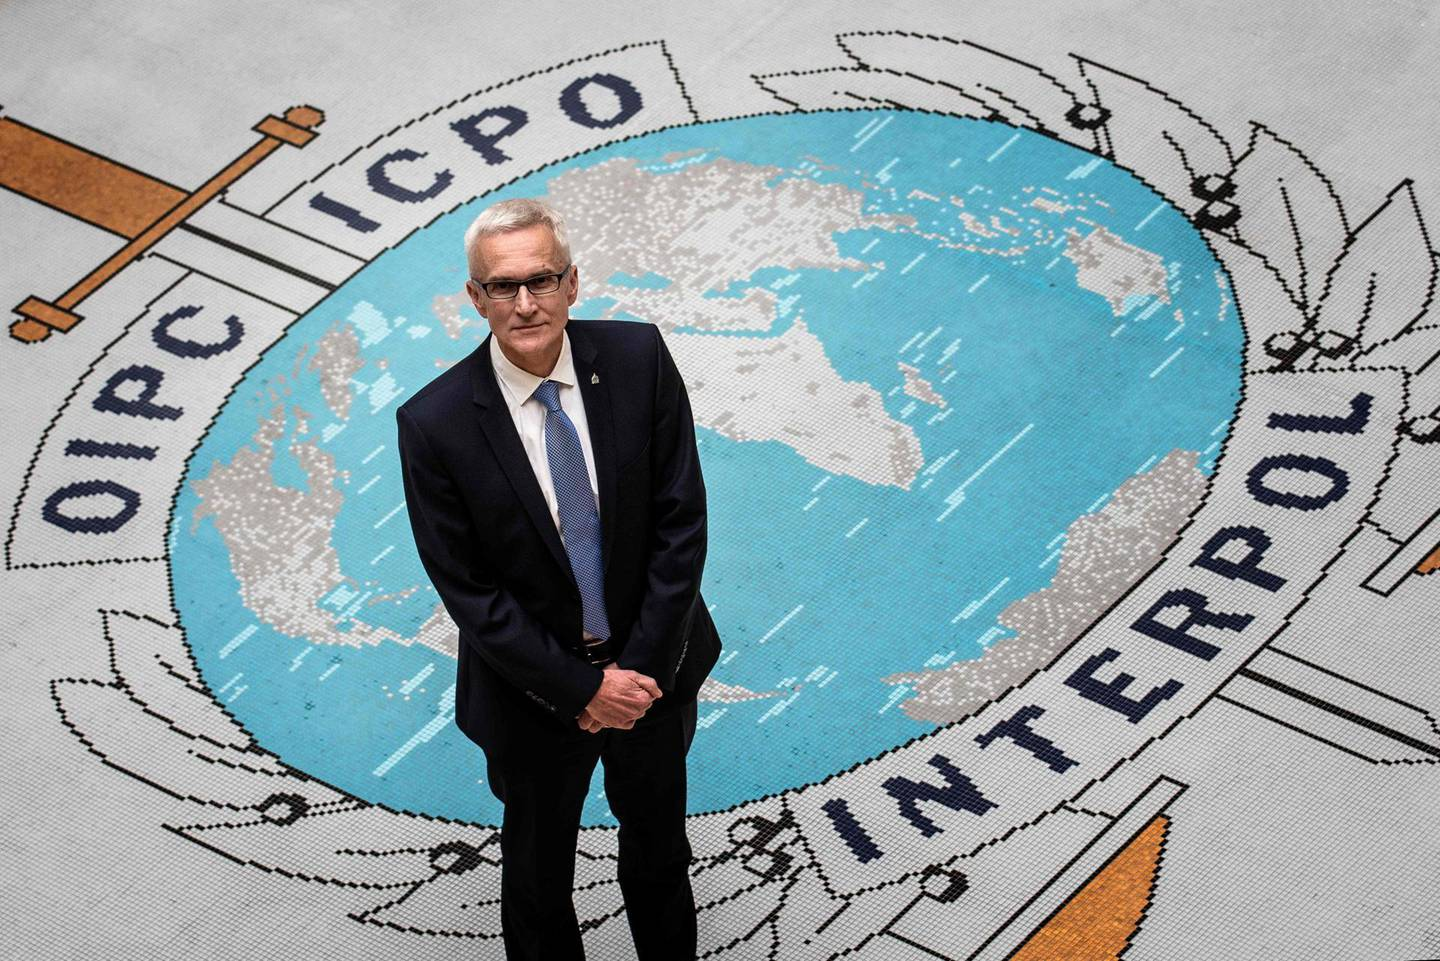 Secretary General of Interpol Jurgen Stock poses for a photograph at the Interpol headquarters in the southern French city of Lyon on November 8, 2018. / AFP / JEFF PACHOUD